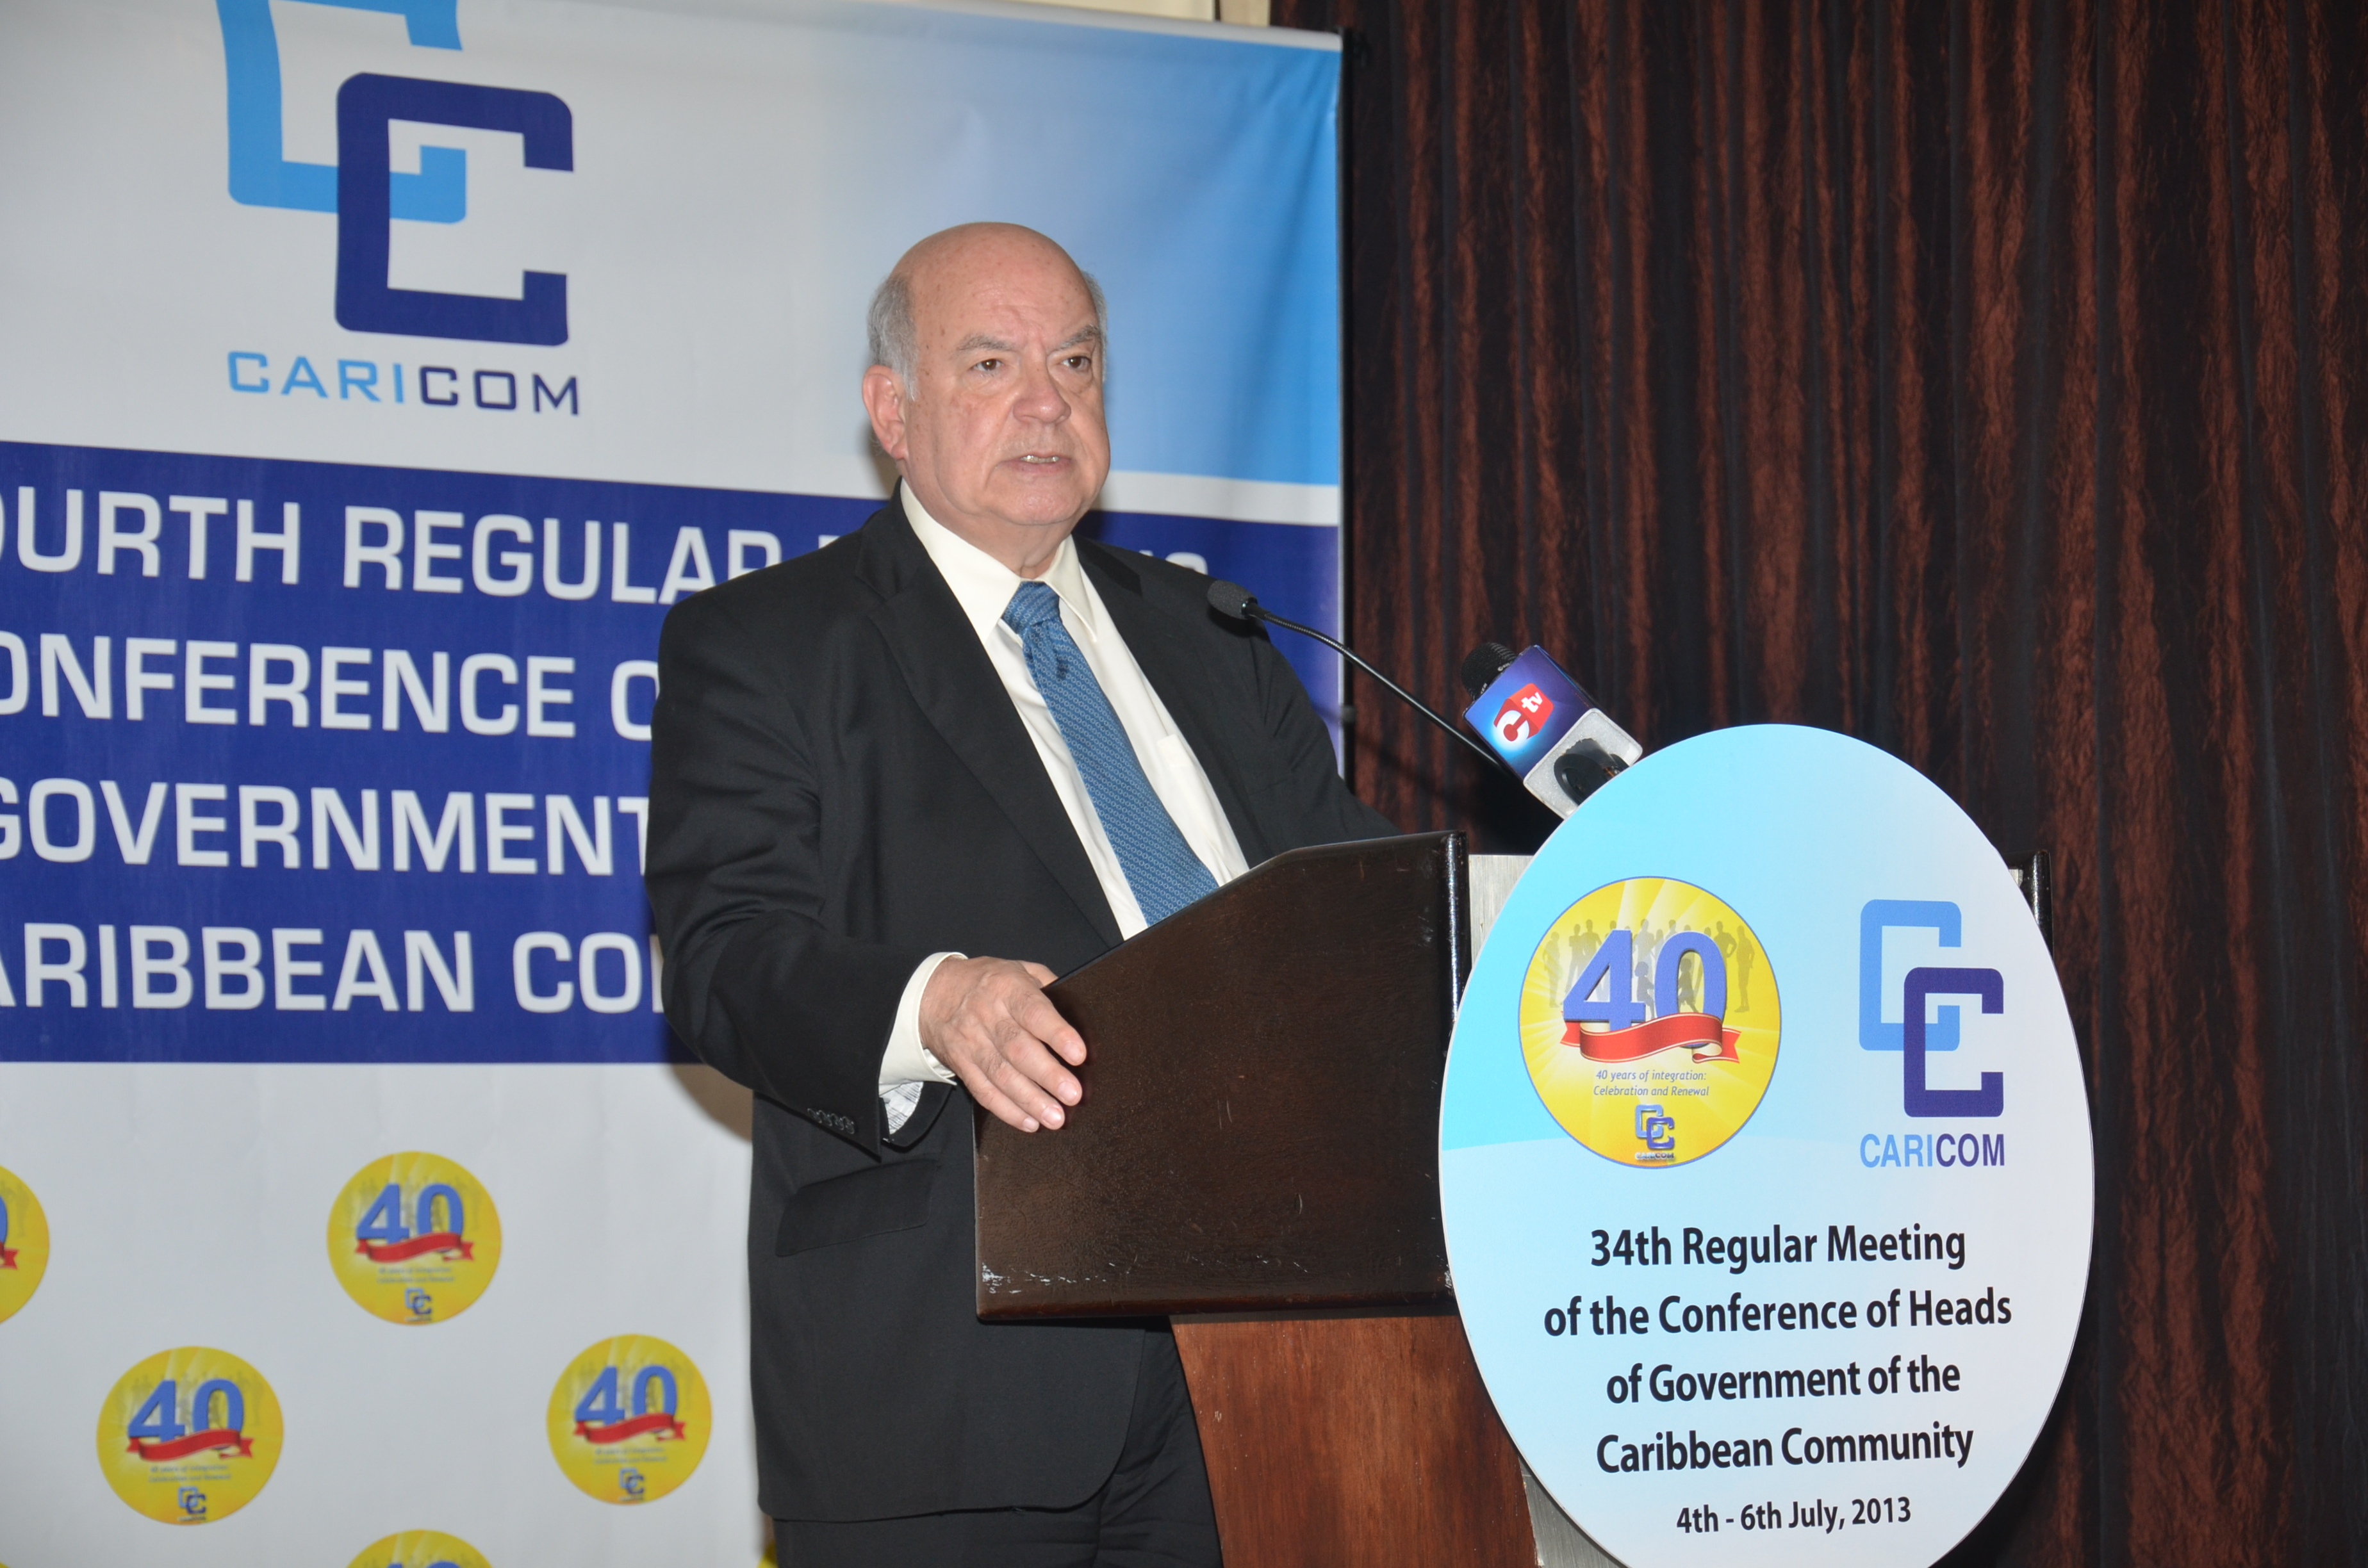 Secretary General Insulza gives a press conference in the context of the 34th Regular Meeting of the Conference of Heads of Government of the CARICOM